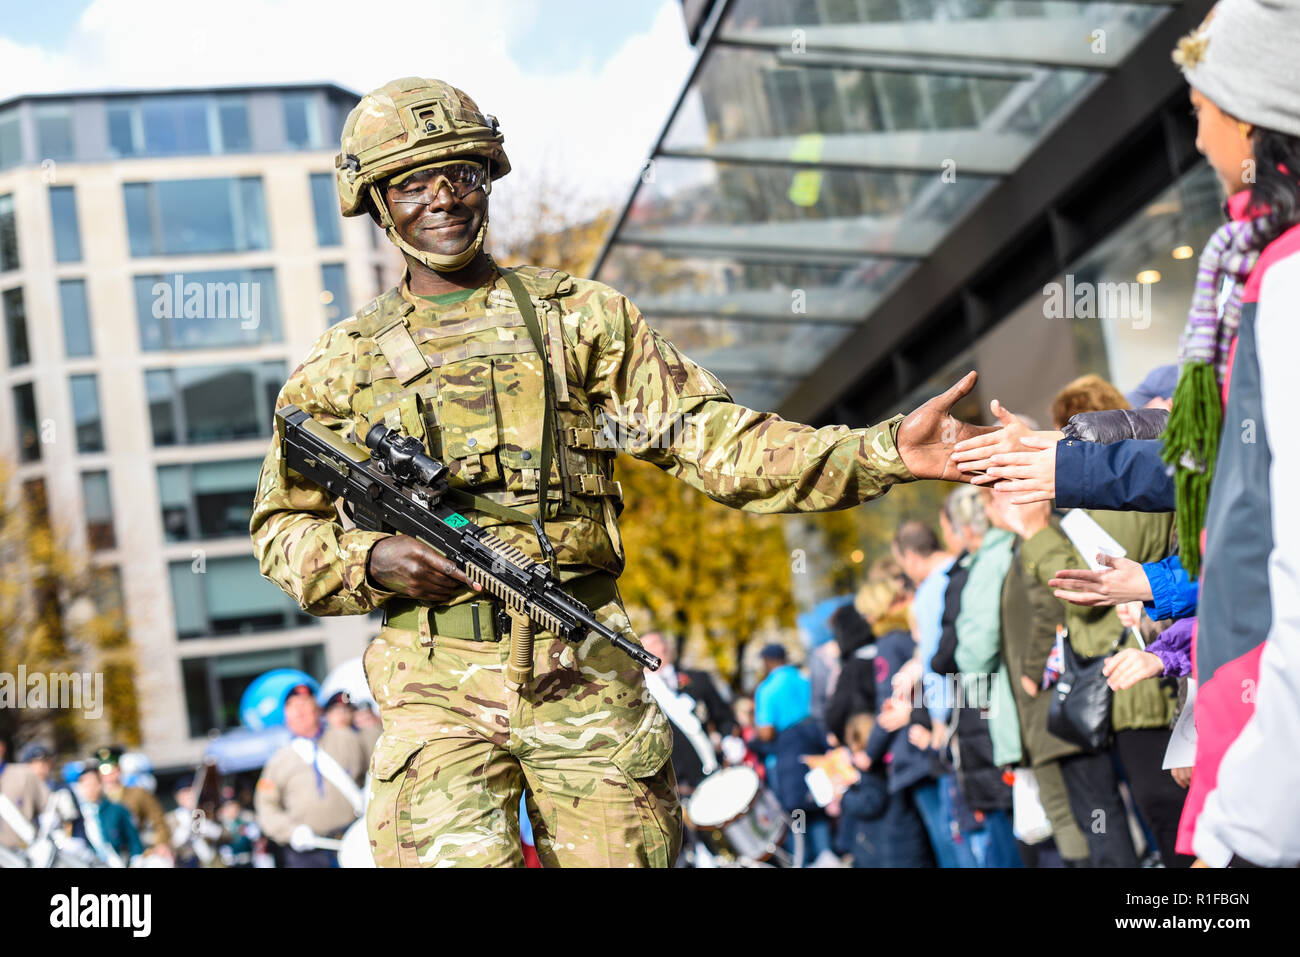 Coloured, ethnic British Army soldier interacting with the crowd at the Lord Mayor's Show Parade, London, UK. Equal opportunities. Public - Stock Image